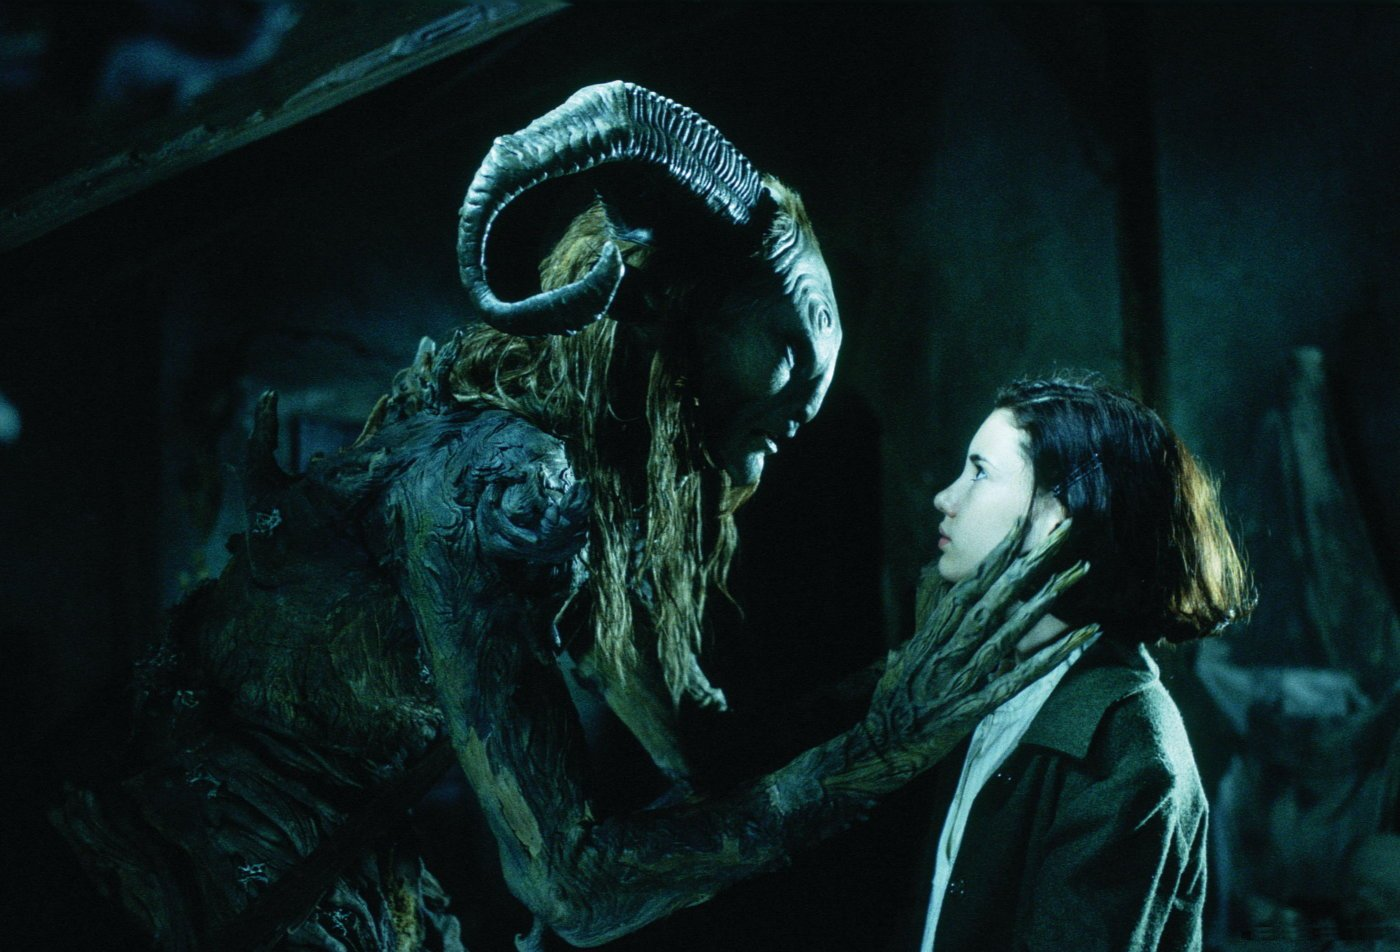 16 pan 39 s labyrinth hd wallpapers background images wallpaper abyss - Fresh pan s labyrinth wallpaper ...